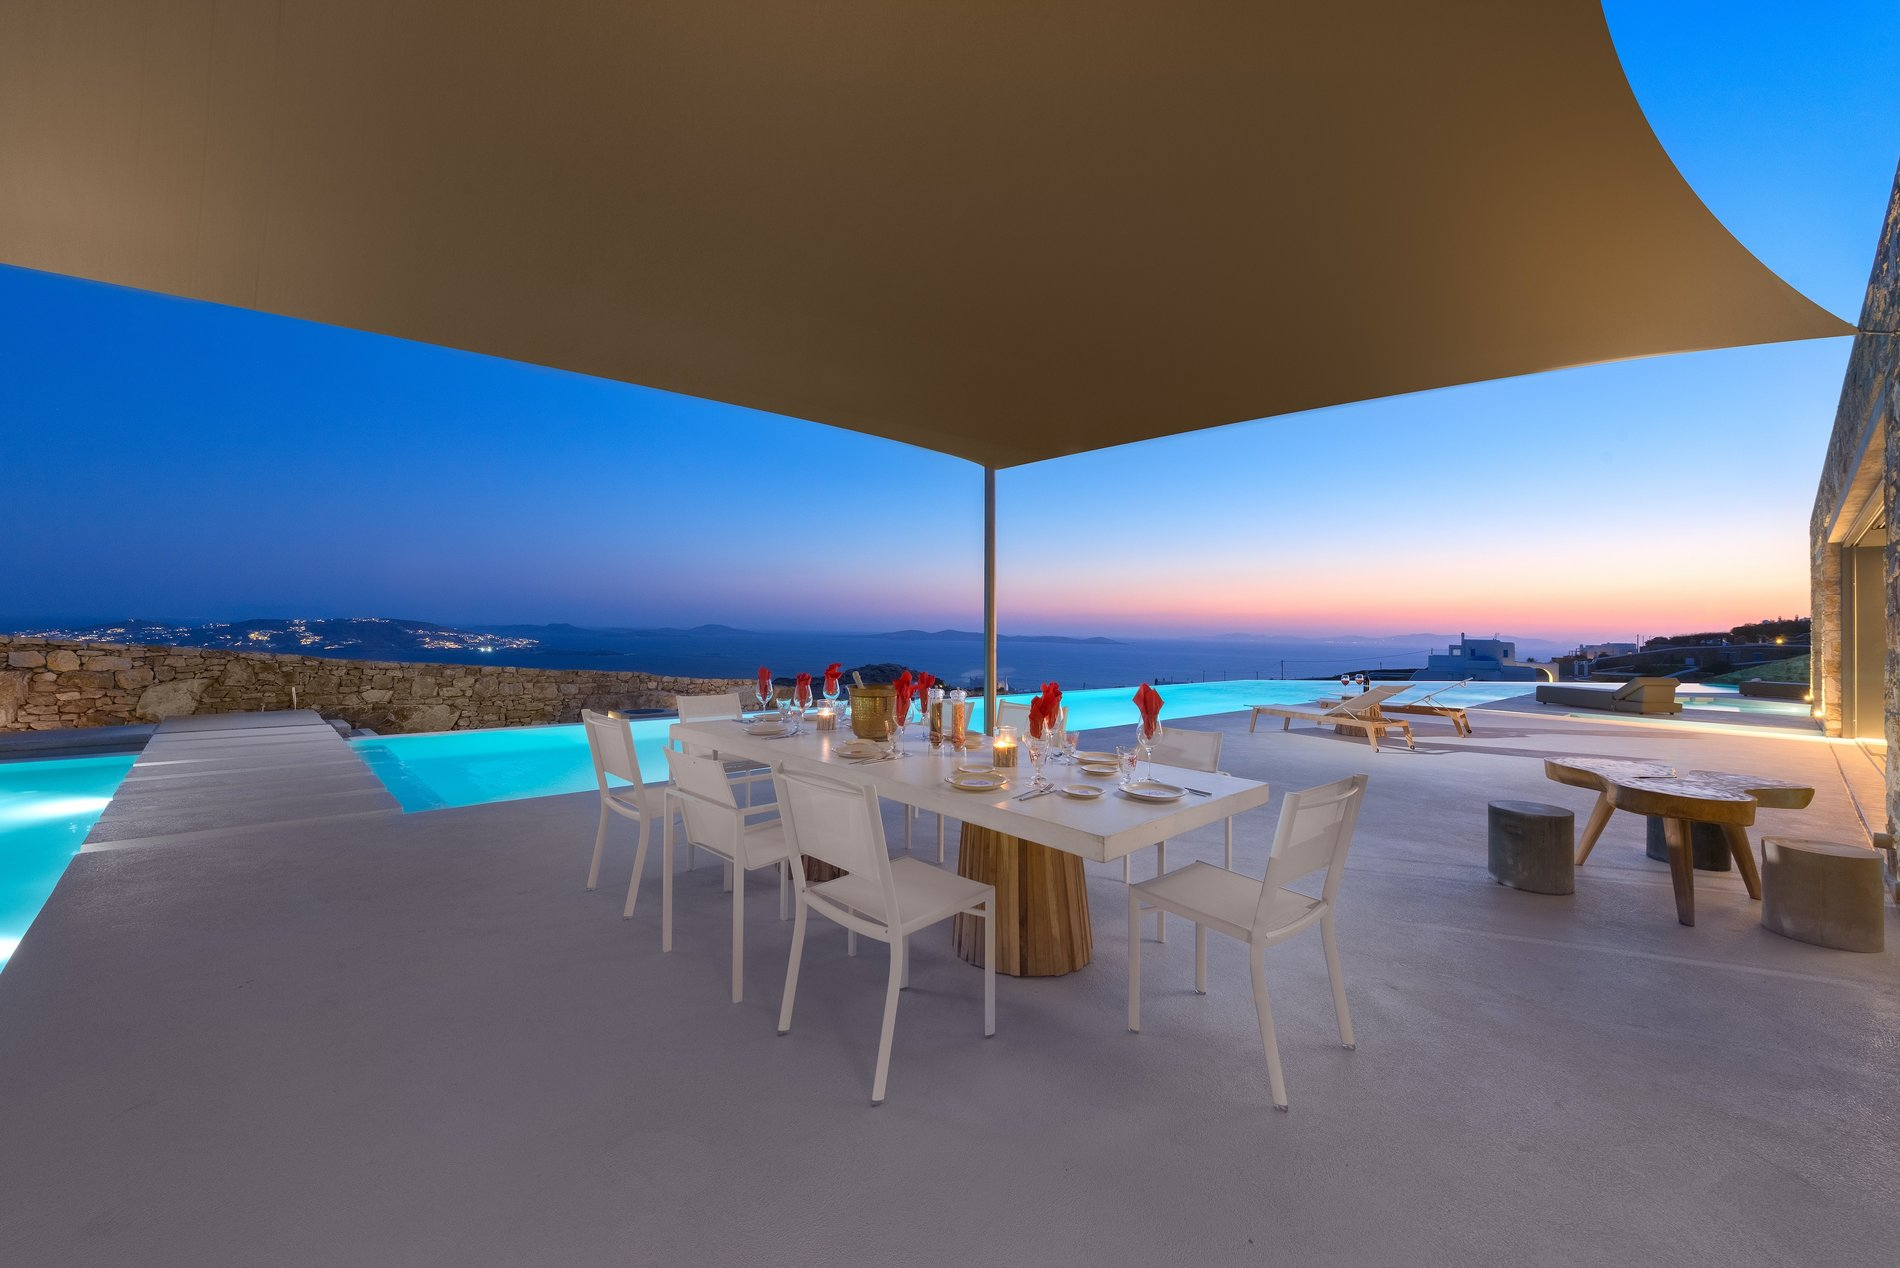 Sunset on the cement patio overlooking Mykonos, Greece.